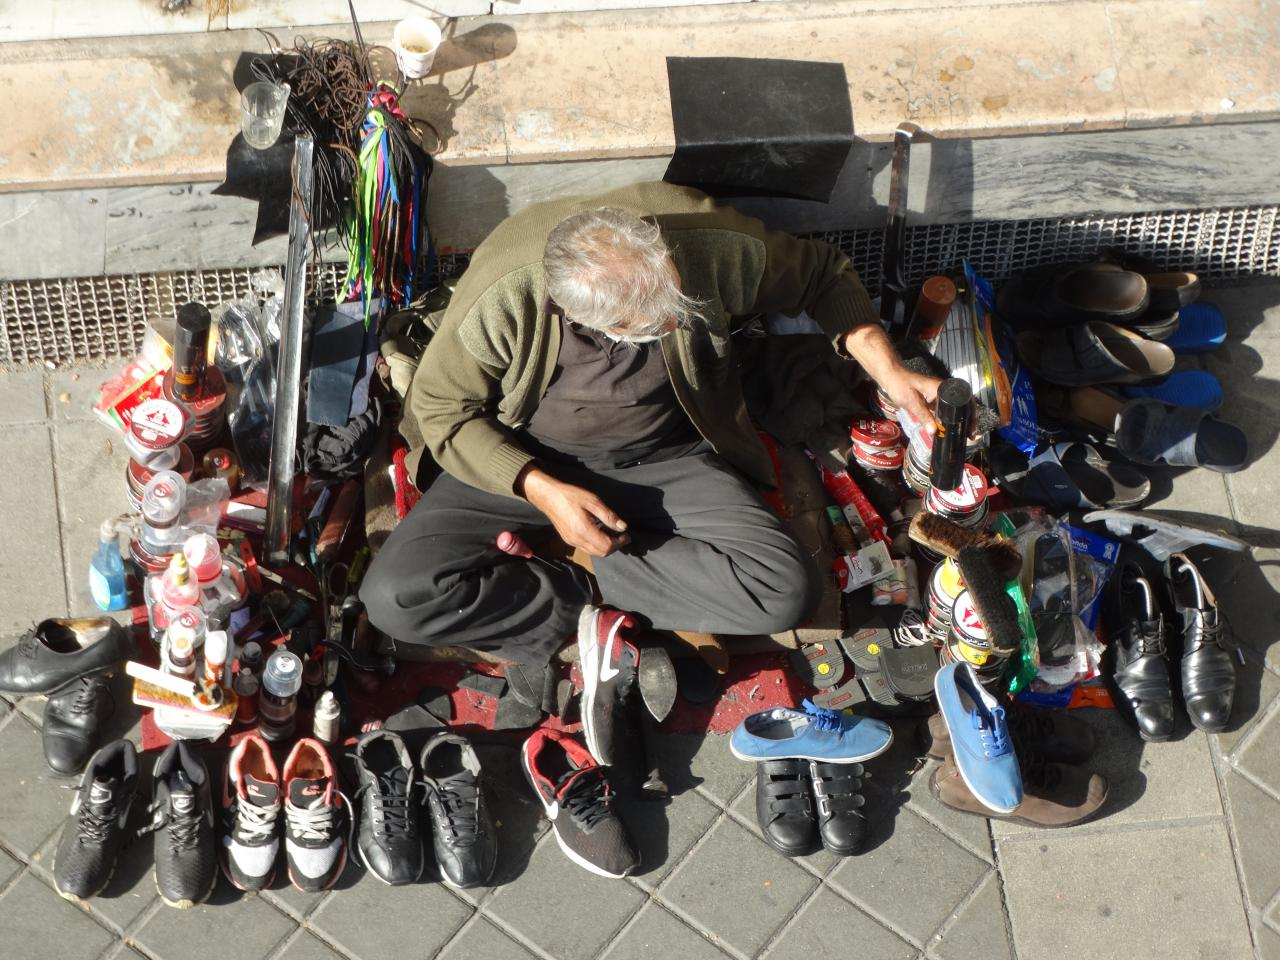 Recession hits shining An old shoe repair man has no customer because of deep economy crisis caused